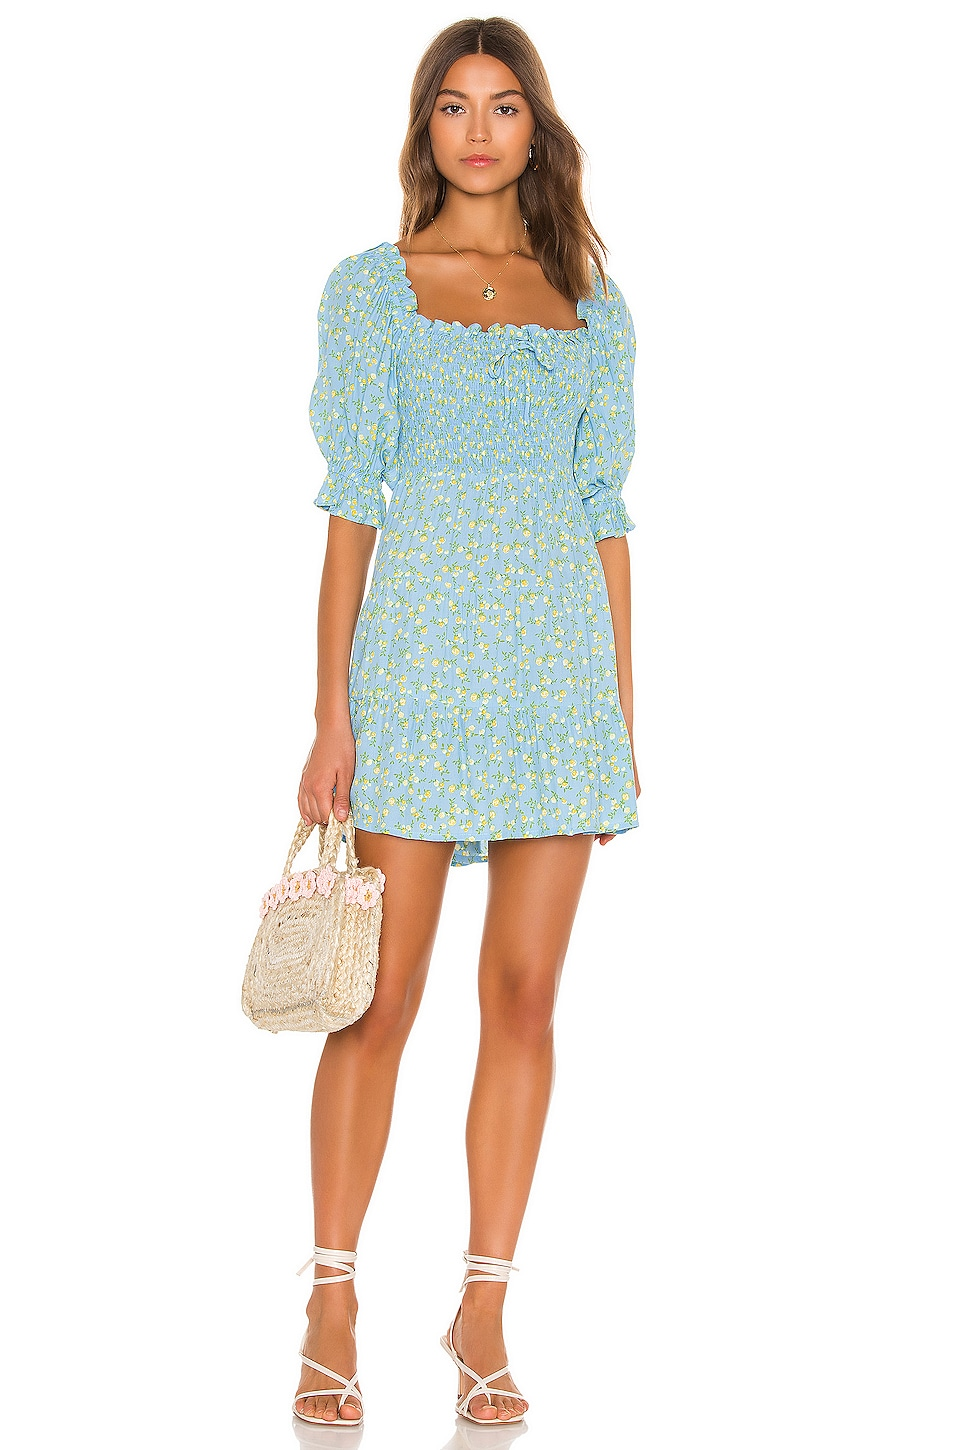 Charlotte Mini Dress             FAITHFULL THE BRAND                                                                                                       CA$ 201.31 17